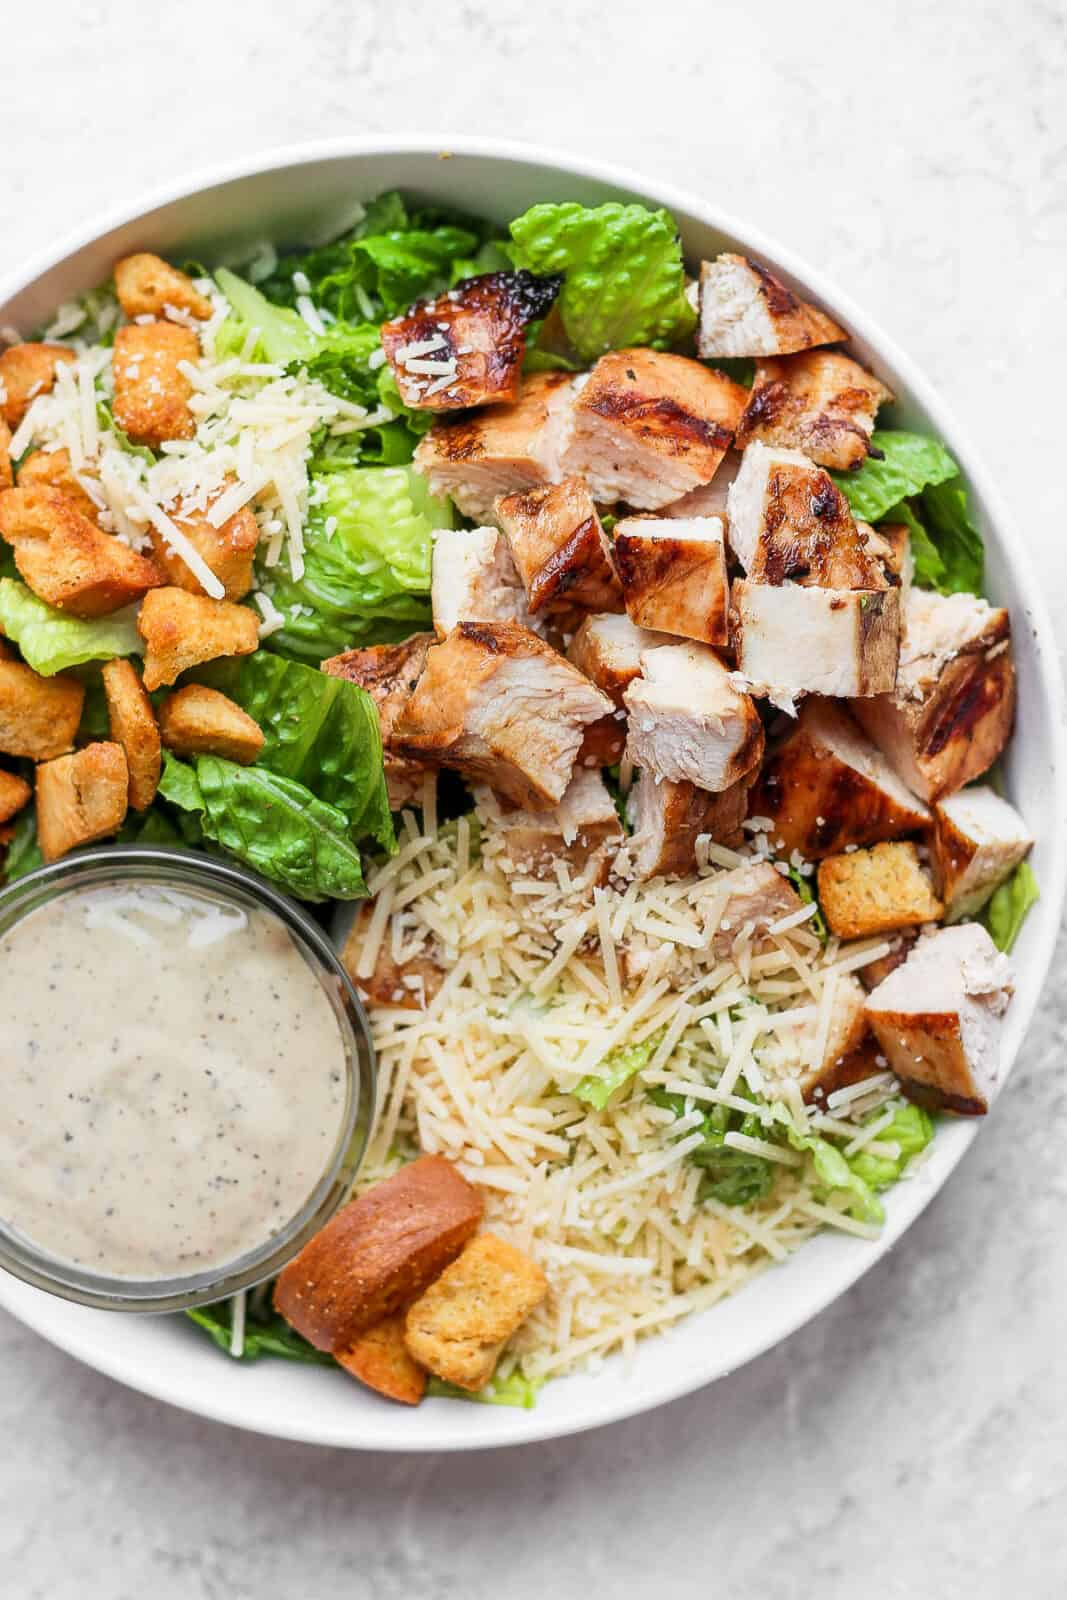 Grilled chicken caesar salad with a small dish of dressing.